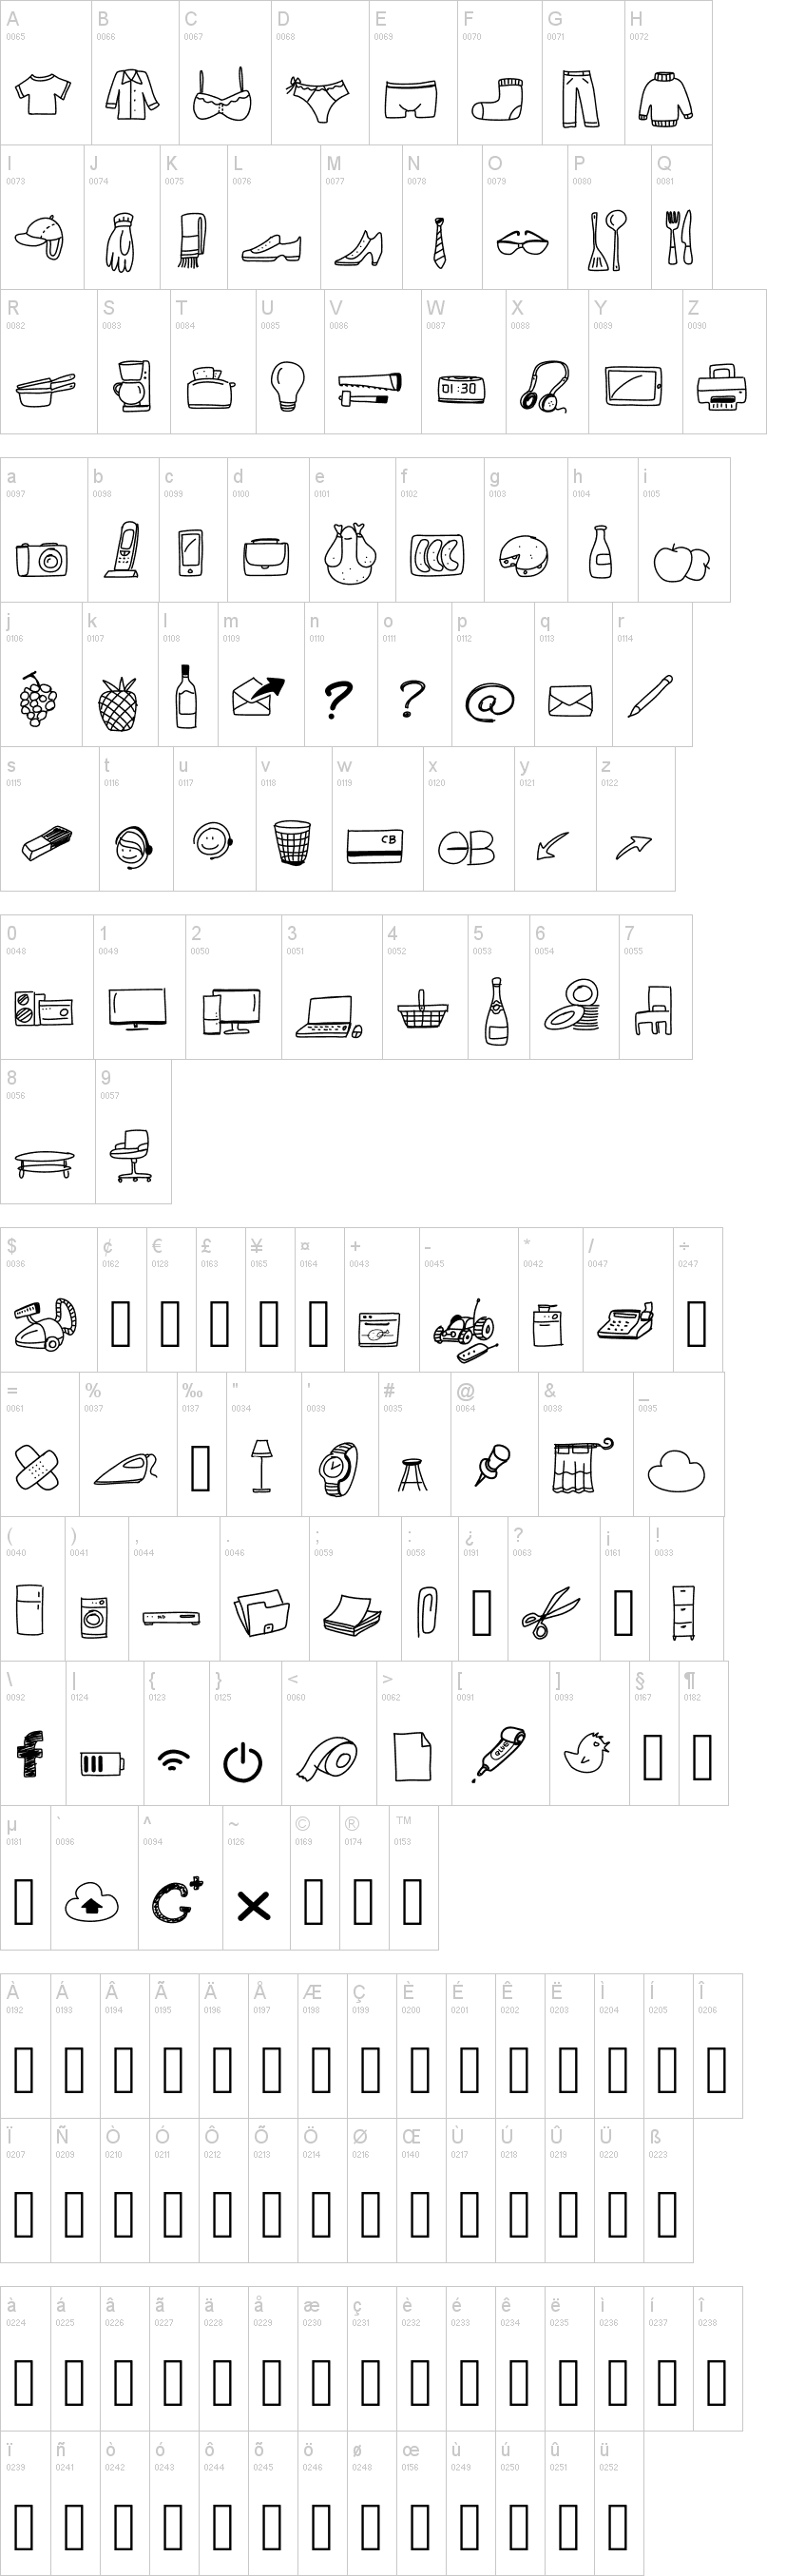 Peax Webdesign Free Icons